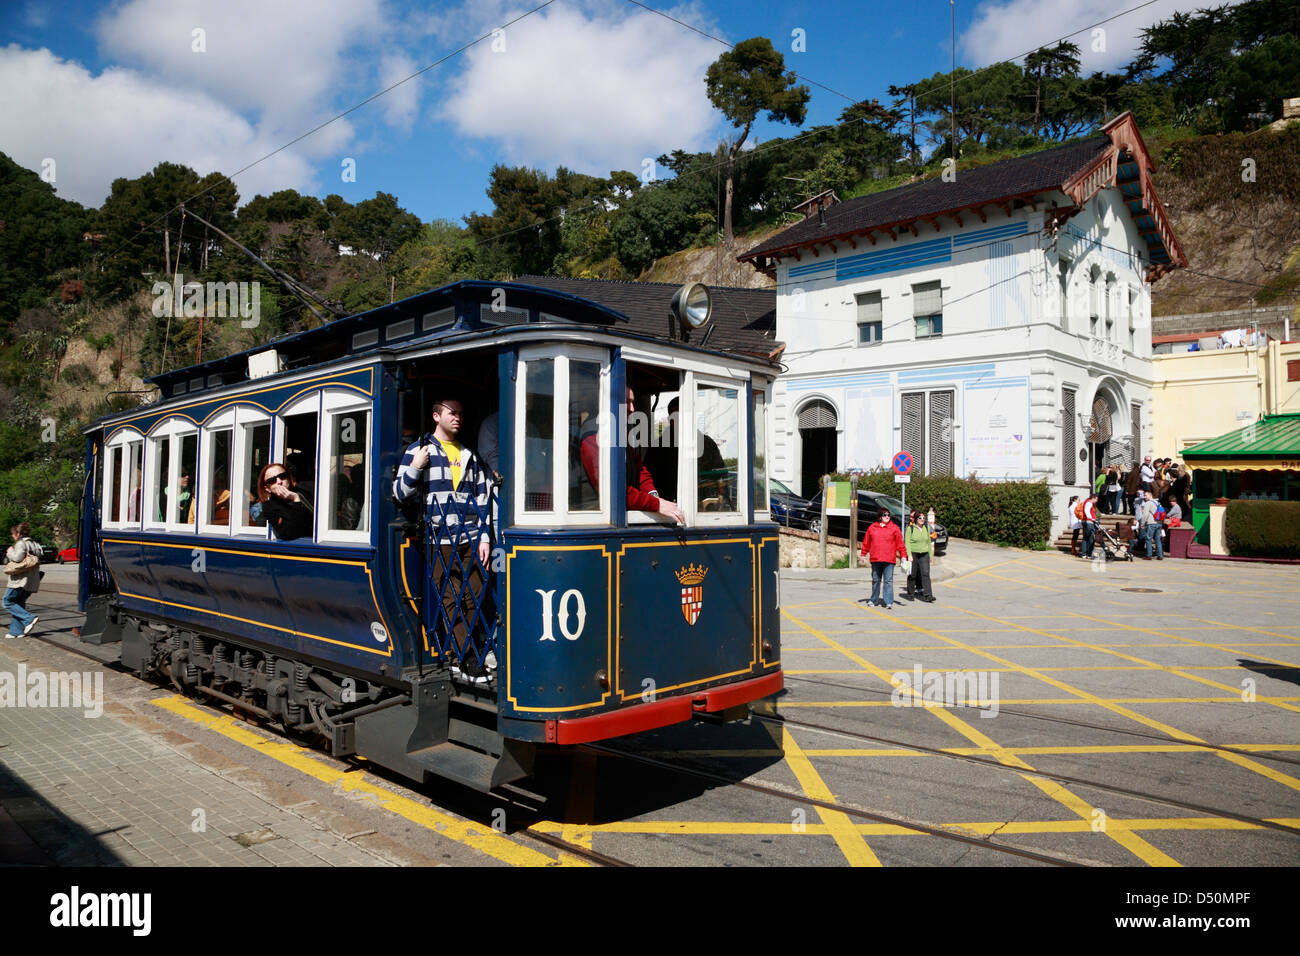 The Historical Tramvia Blau to  mountain TIBIDABO, Barcelona, Spain - Stock Image